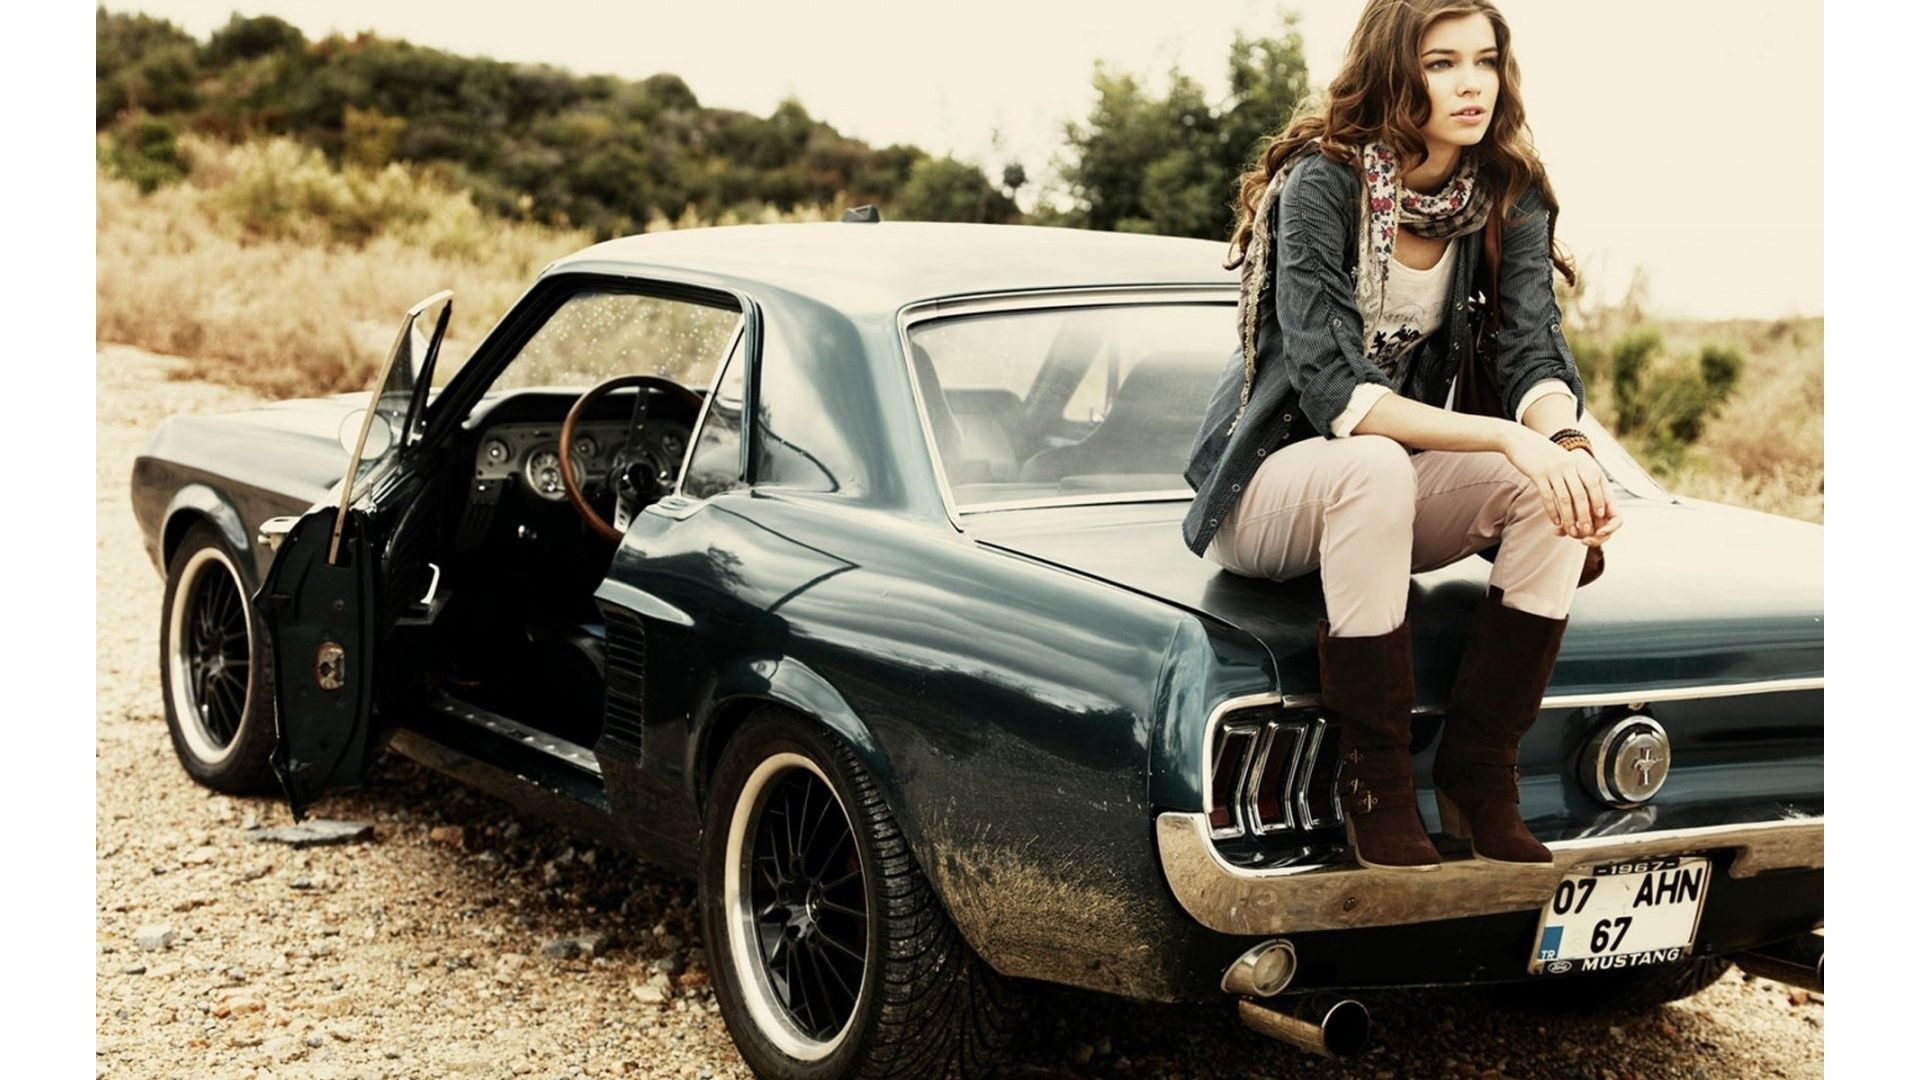 pinryan hensley on hot rods | pinterest | mustang, cars and